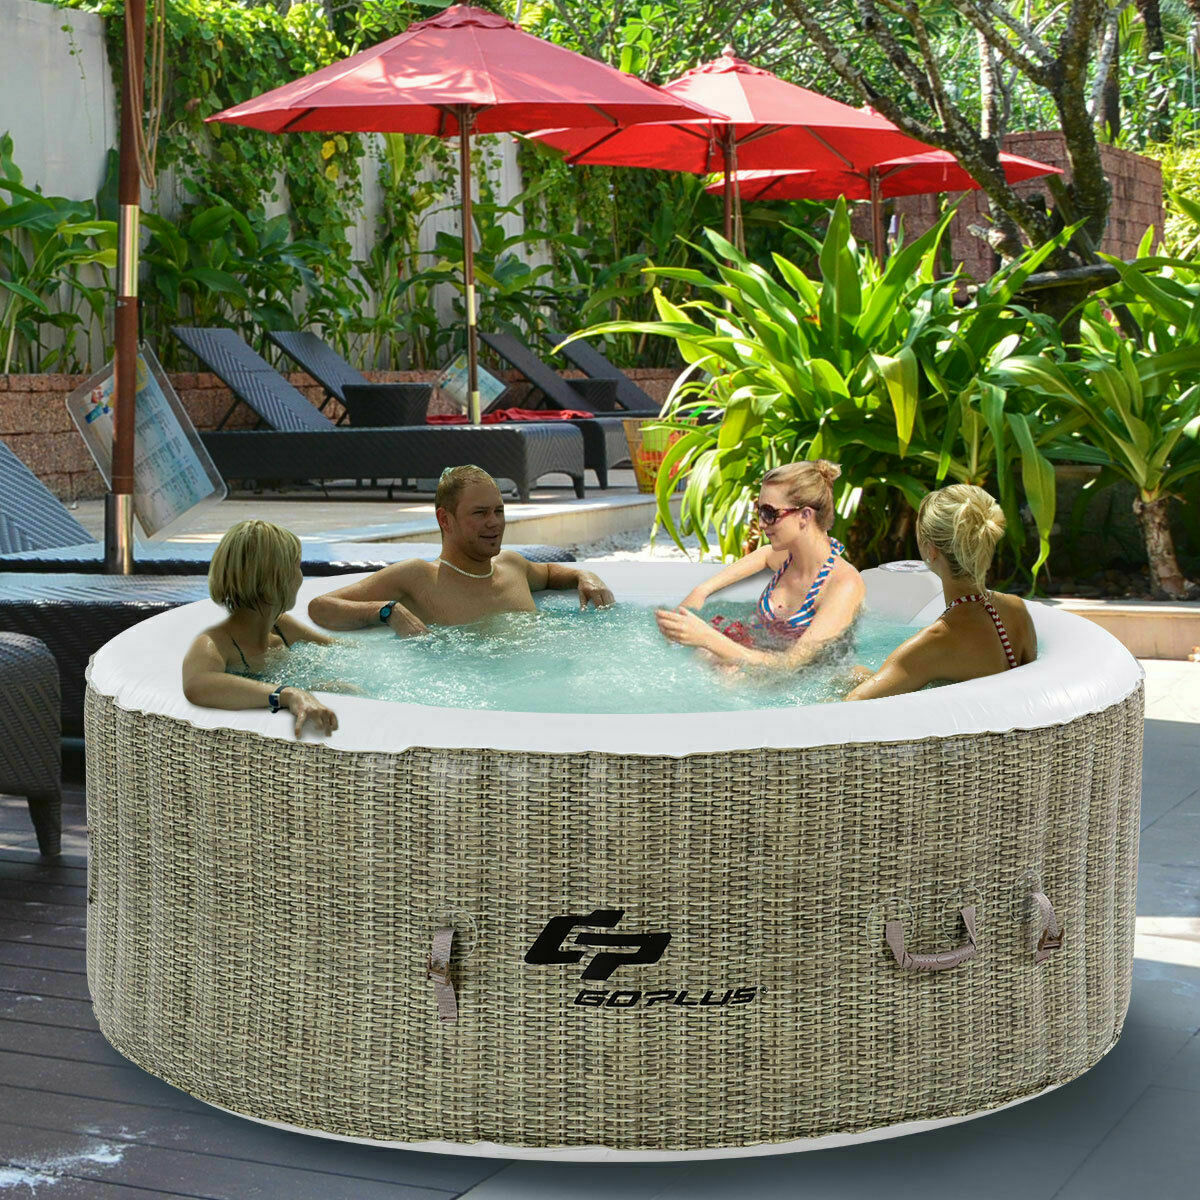 4 PERSON INFLATABLE Hot Tub Outdoor Jets Portable Heated Bubble Spa ...